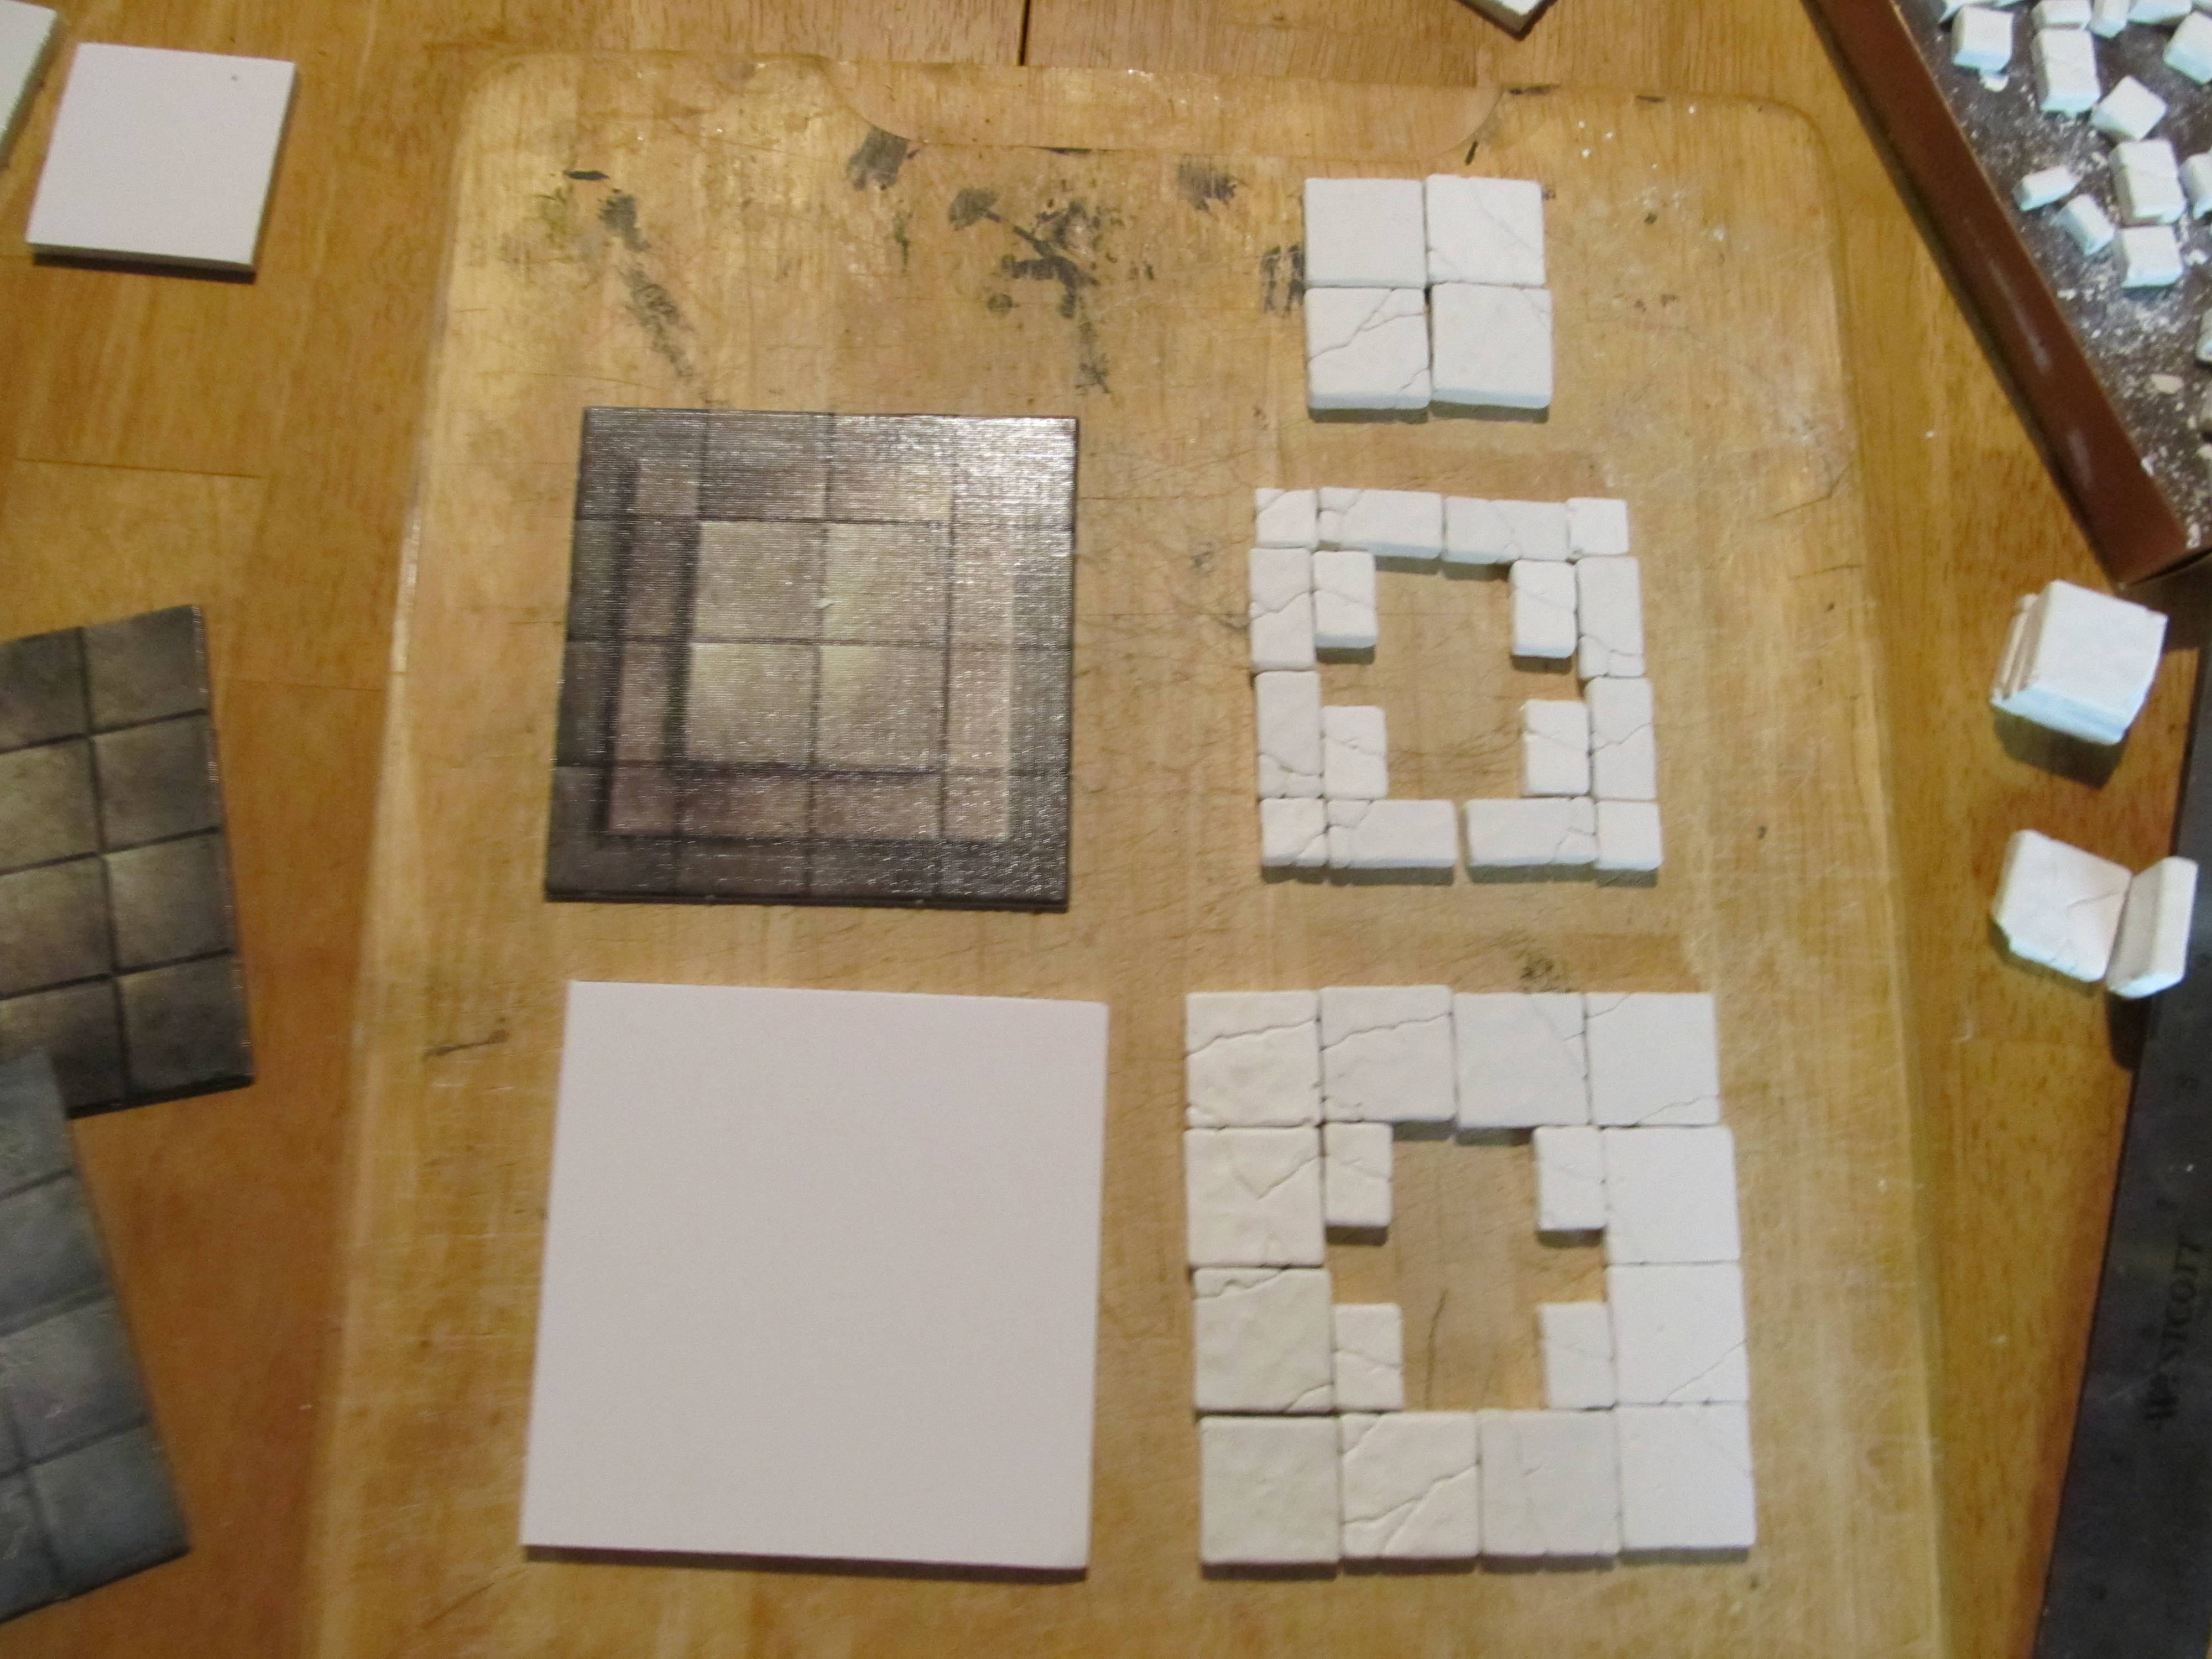 Planning prevents mistakes when it comes time to gluing. Here are the pieces laid out for the pedastal.